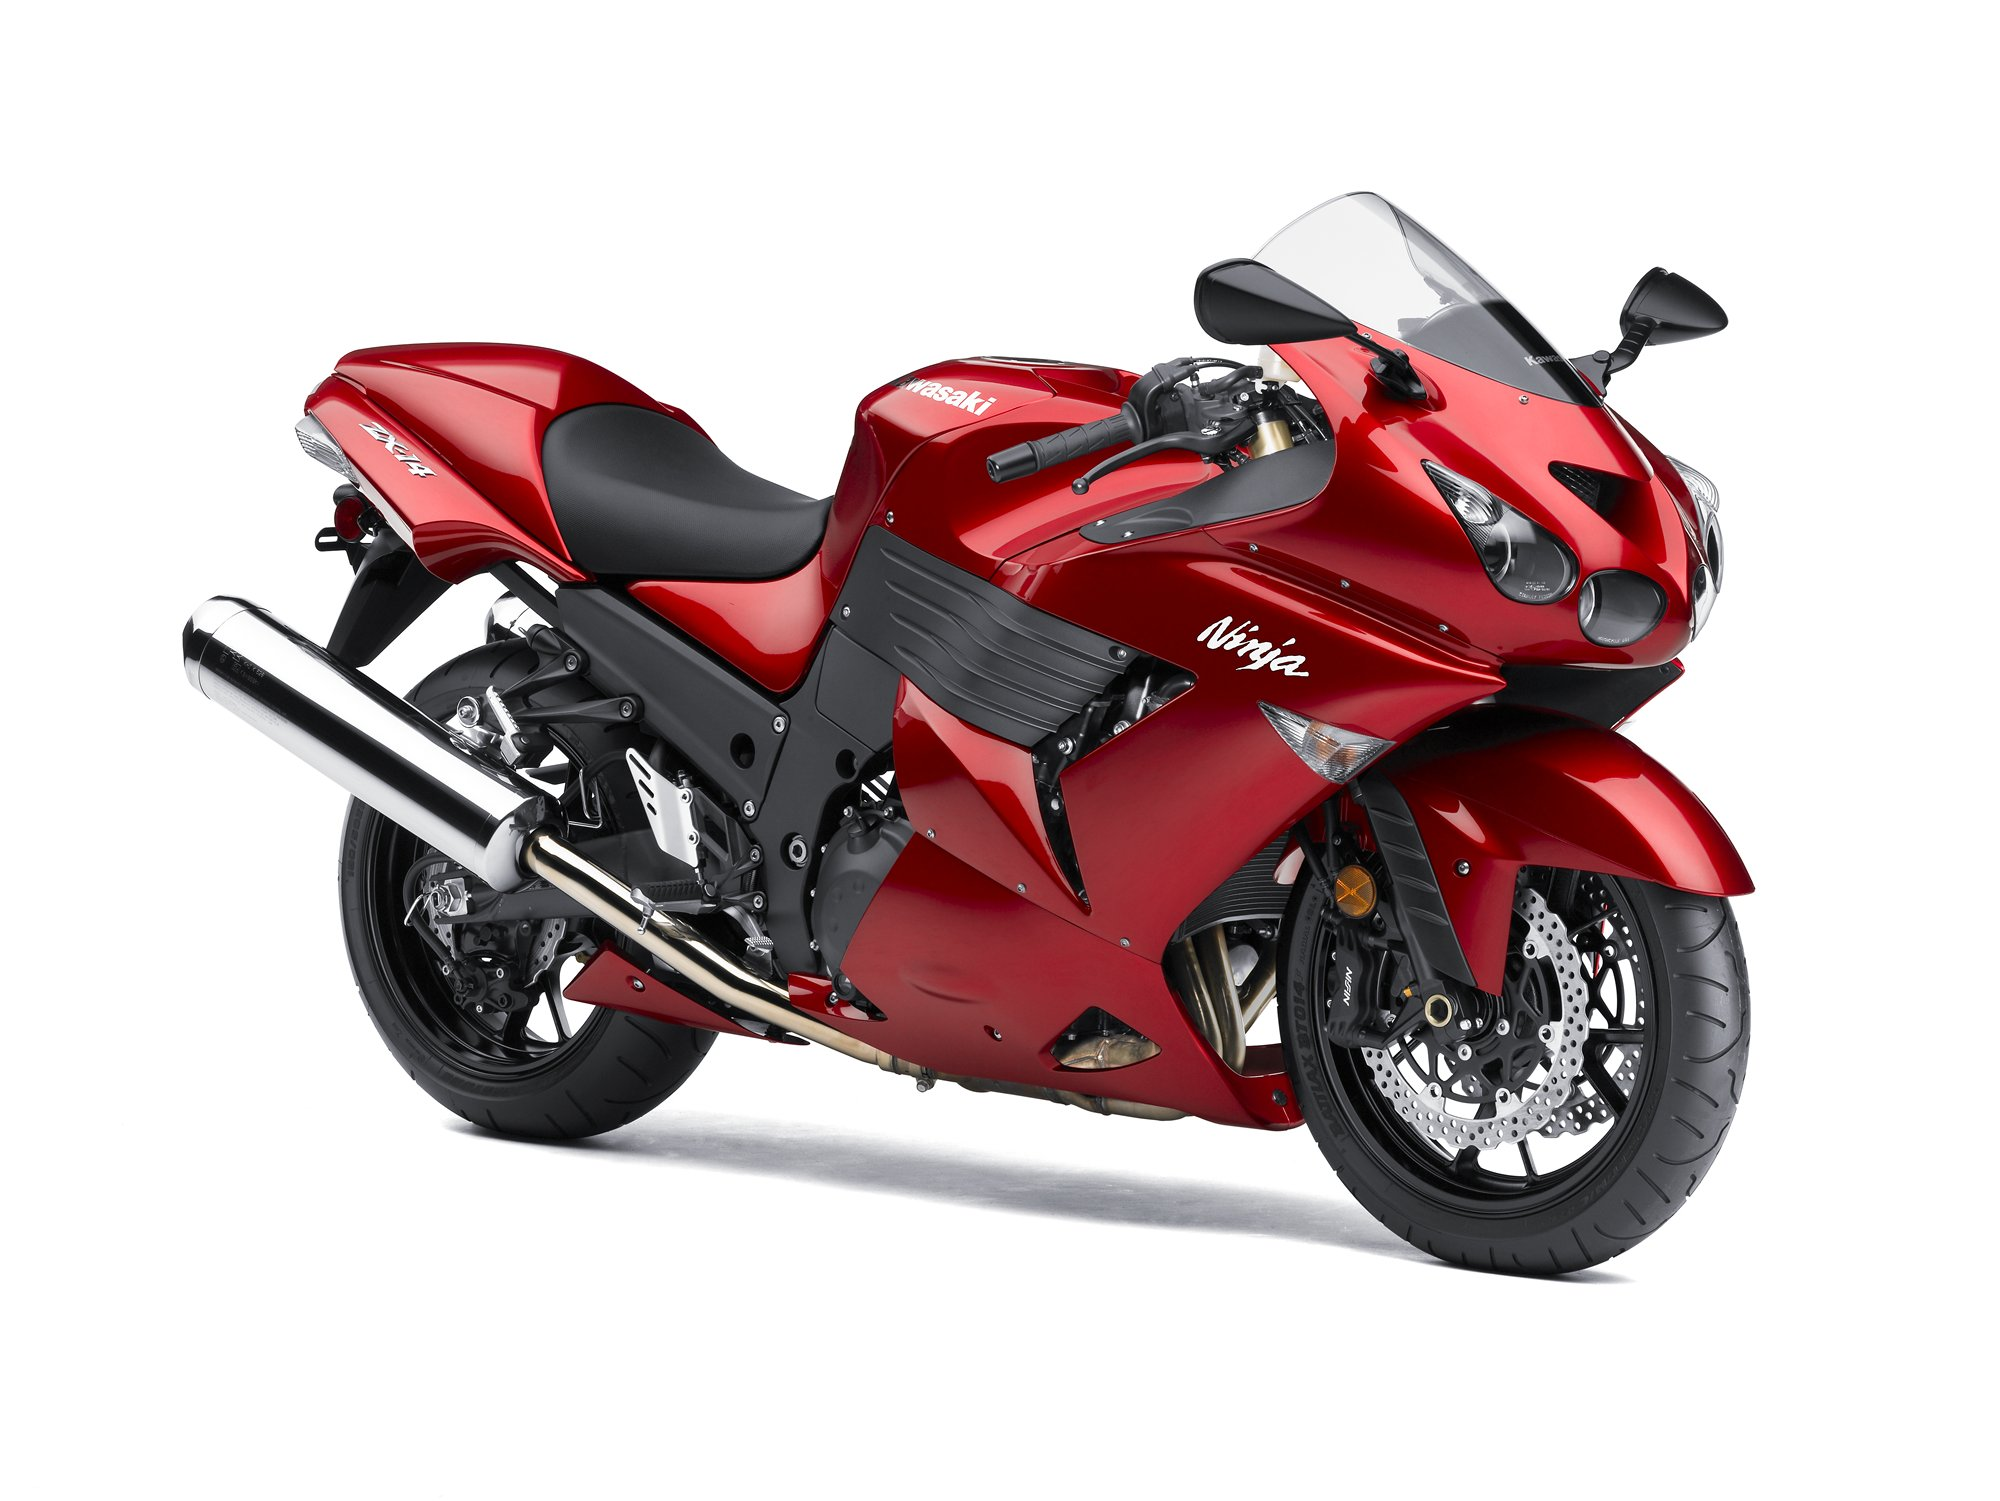 Top 10 Fastest Production Motorcycle In The World also Showimage further 301629301686 as well Watch additionally Kawasaki Jet Ski Parts Diagram Kawasaki Klx 250 R. on 2010 kawasaki concours